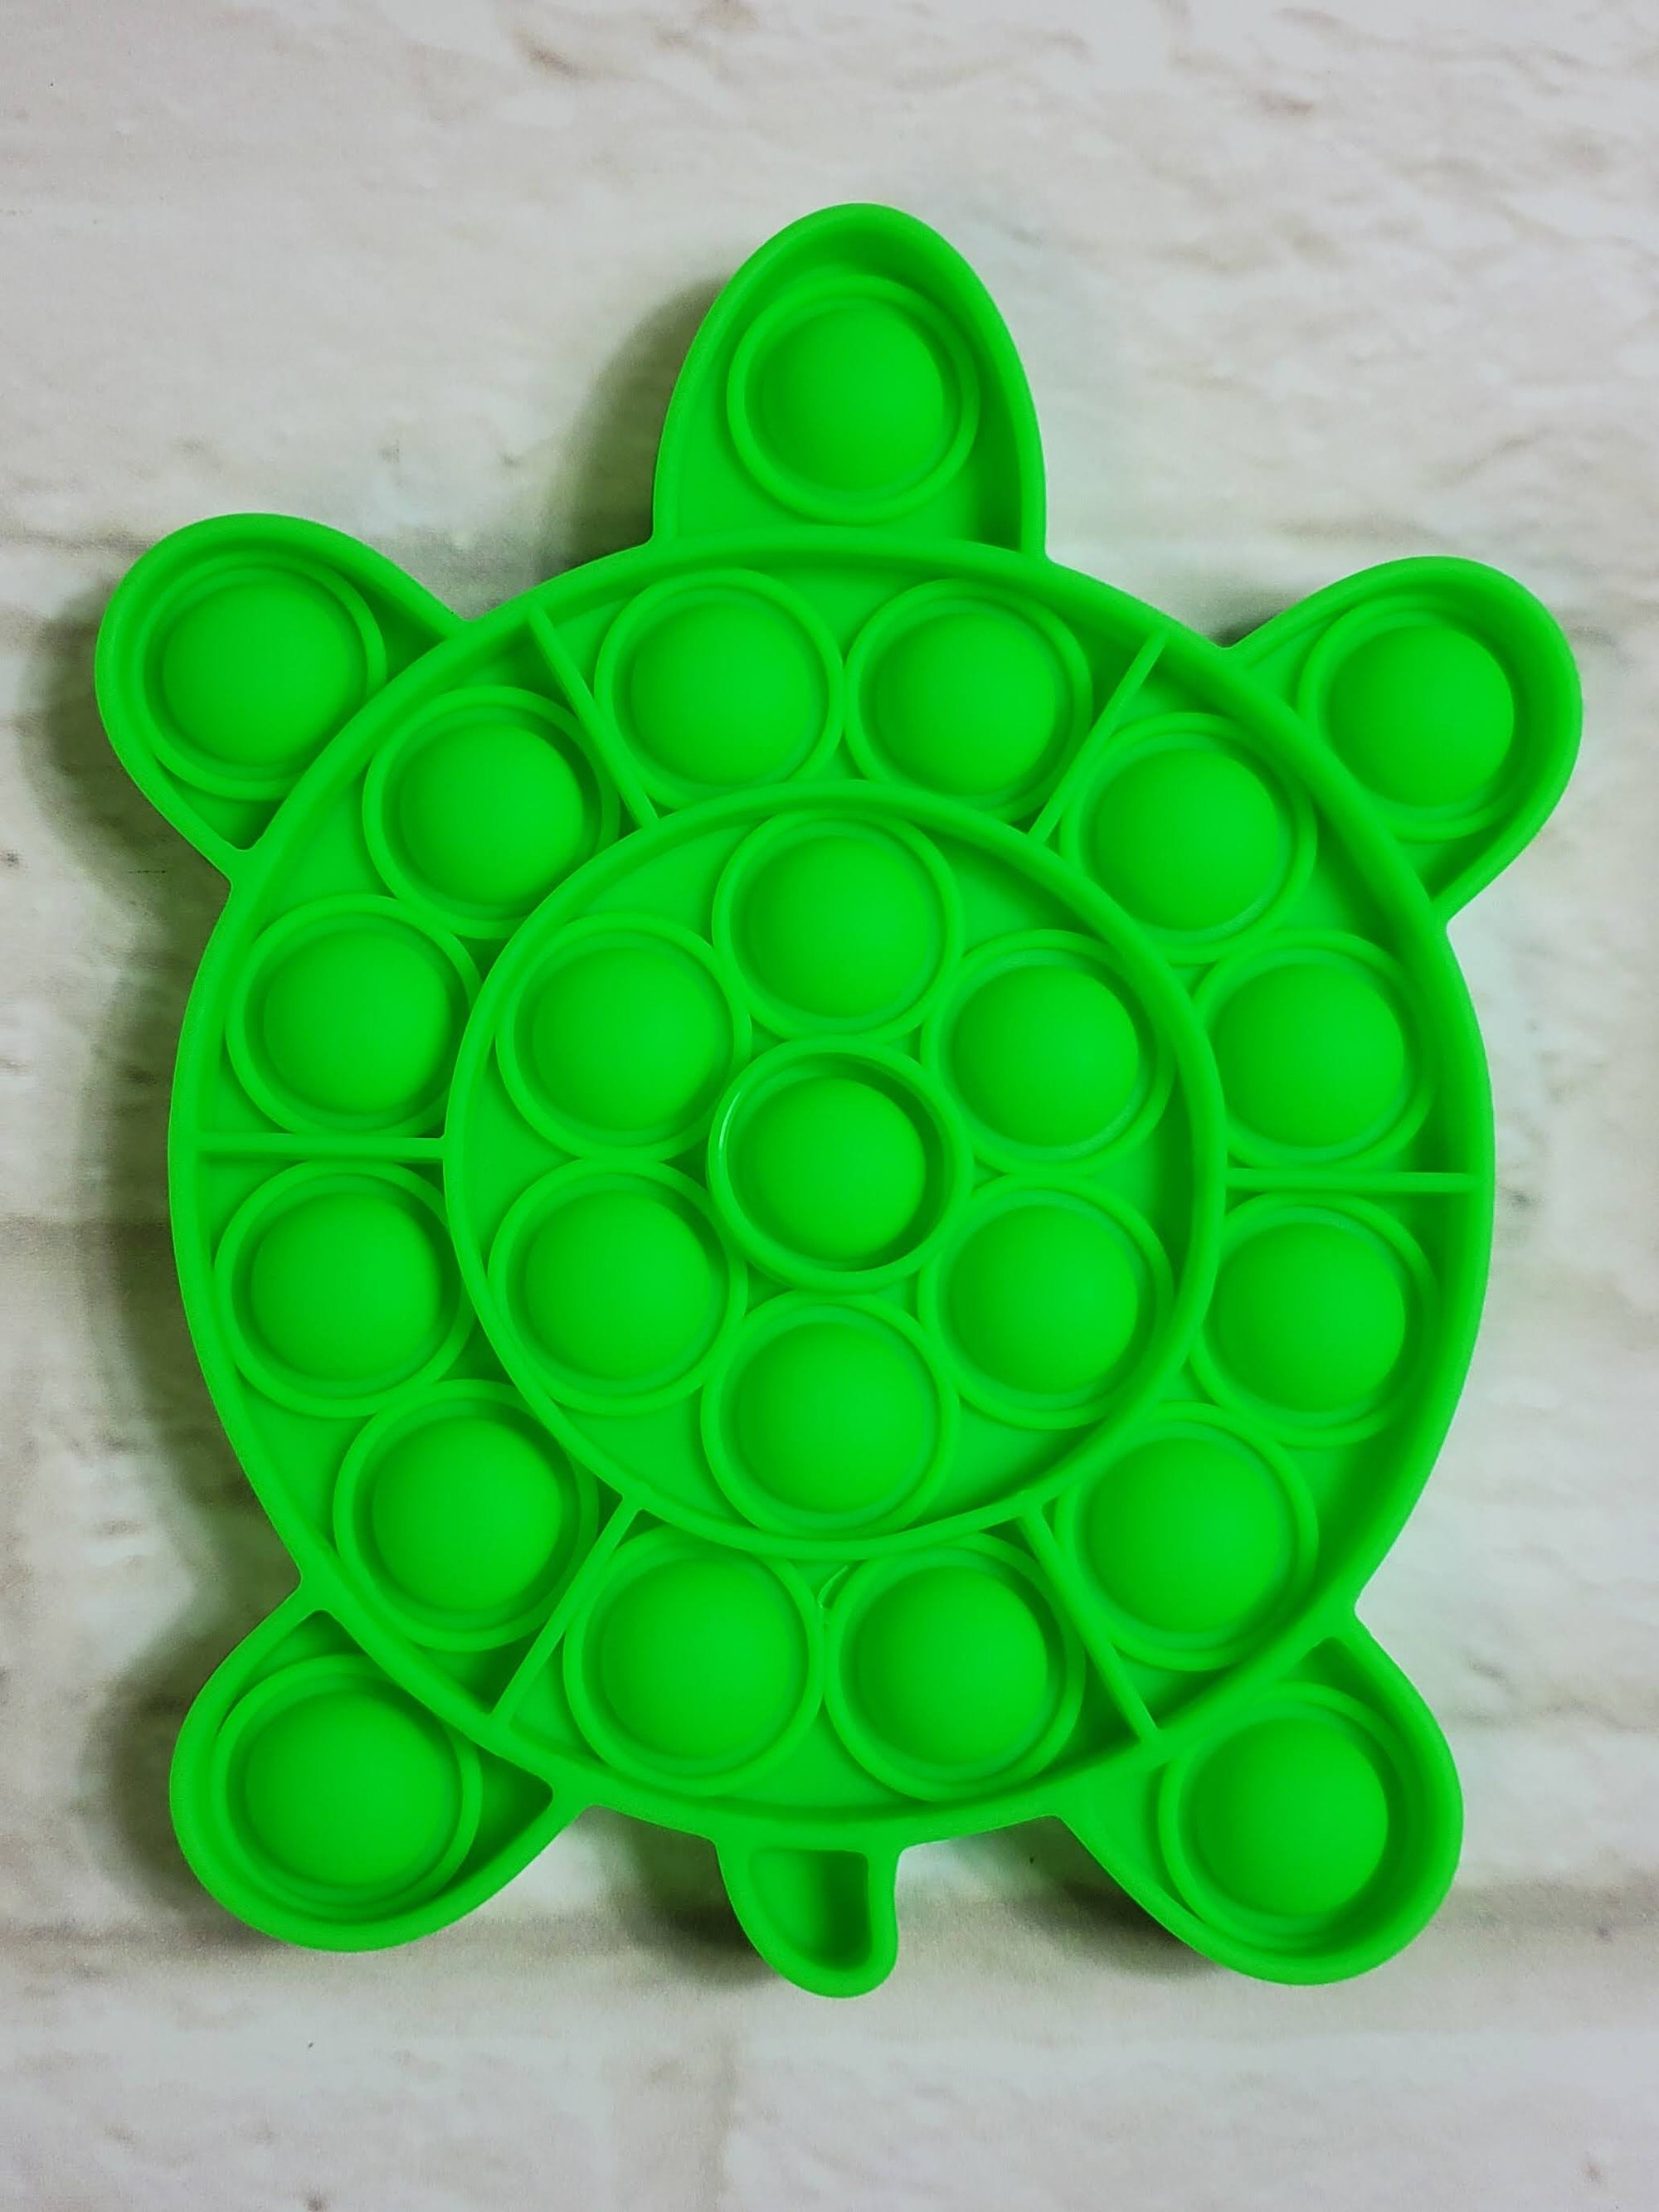 Green Turtle Pop It Bubble Fidget Toy